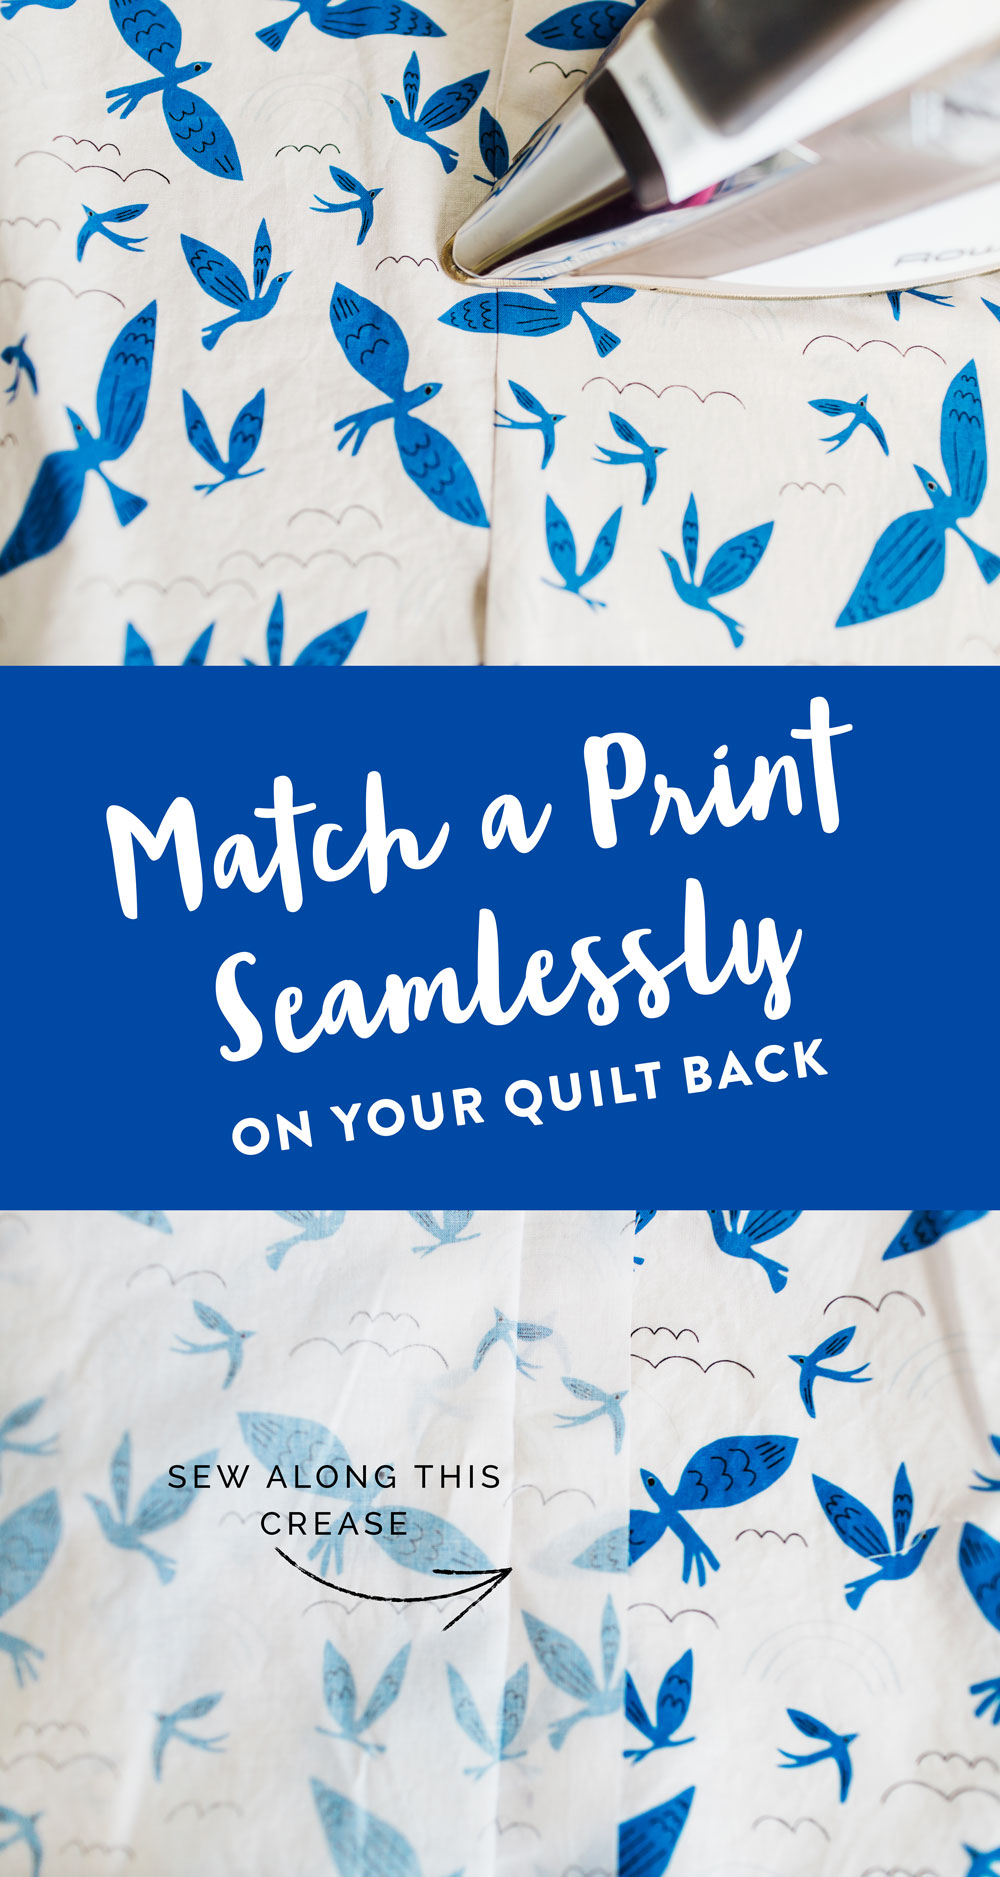 A complete step by step photo tutorial on how to match a print seamlessly. In this example we match a fabric print for quilt backing. Beginner friendly!